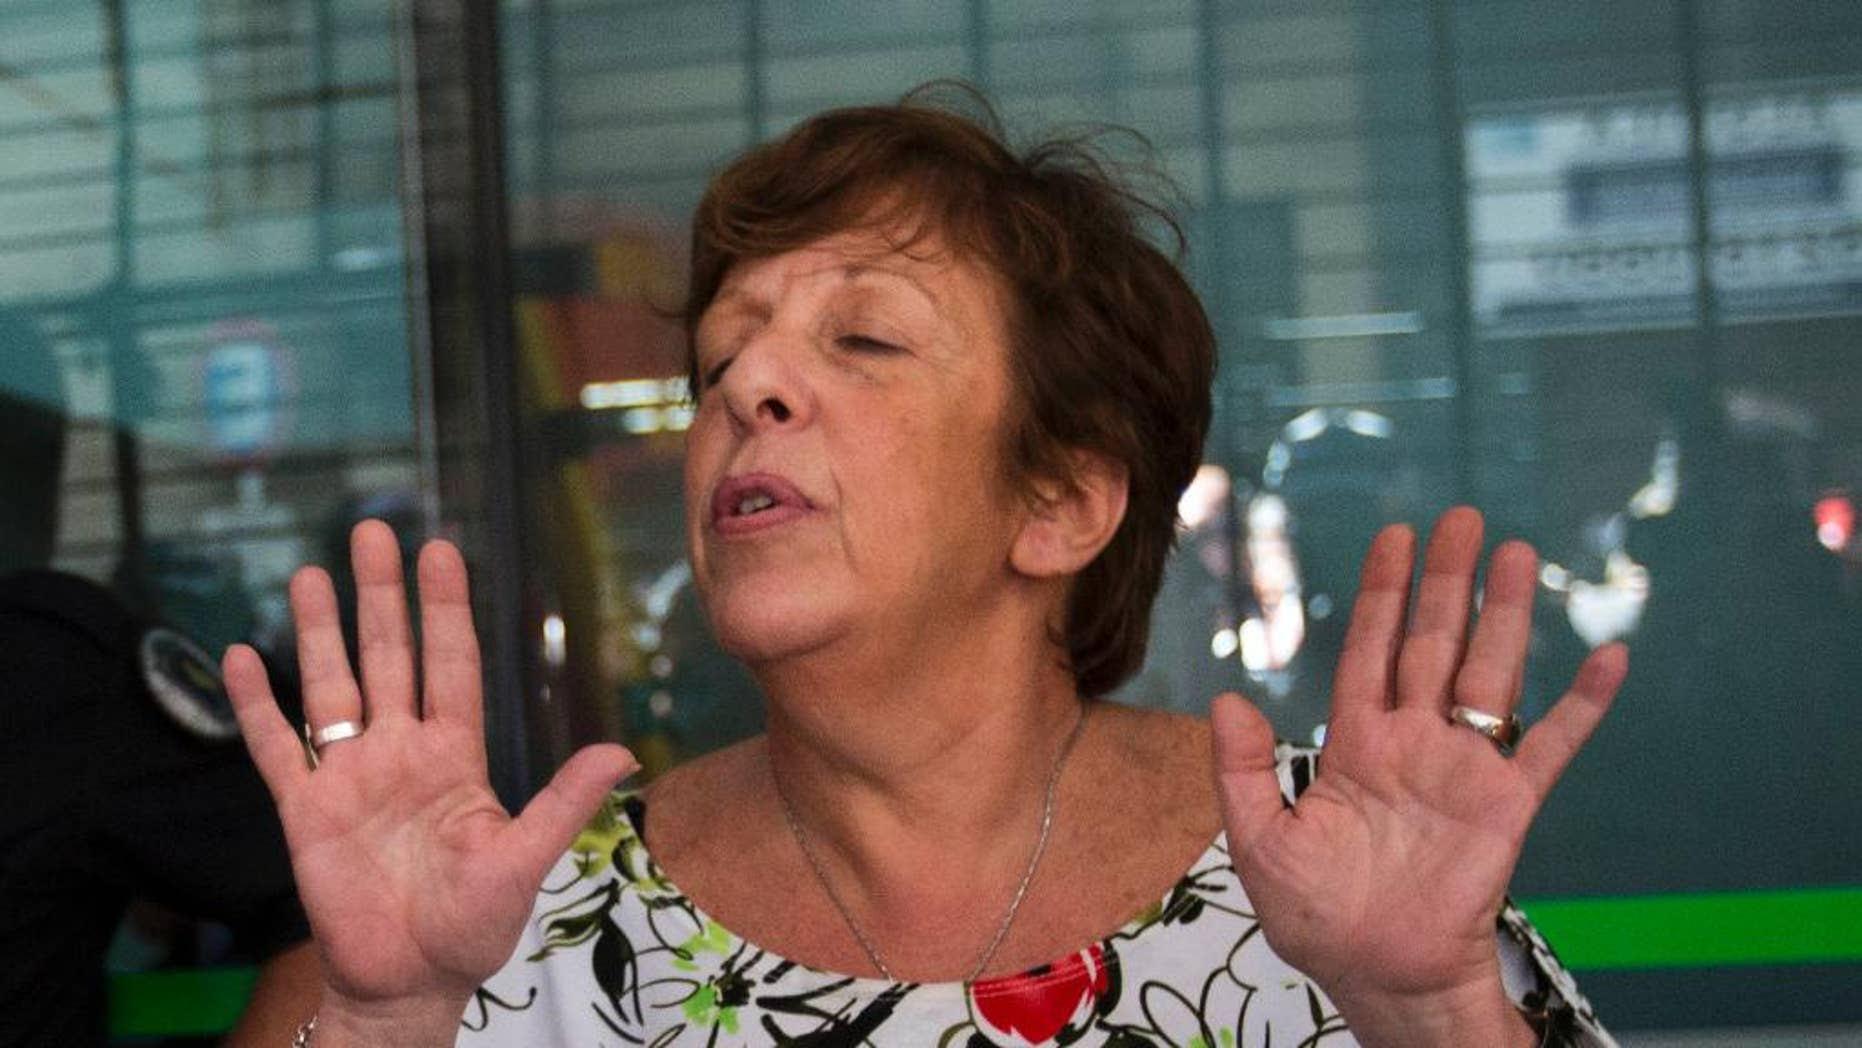 "FILE - In this Jan. 22, 2015, file photo, Viviana Fein, who lead the investigation of prosecutor Alberto Nisman's death, speaks with reporters outside her office, in Buenos Aires, Argentina. Fein, who was removed from the investigation of Nisman's mysterious death, had said before that it was likely suicide. But in an interview with local radio station La Red, she acknowledged on Thursday, May 19, 2016, for the first time that it's possible he was ""induced"" to kill himself. (AP Photo/Rodrigo Abd, File)"